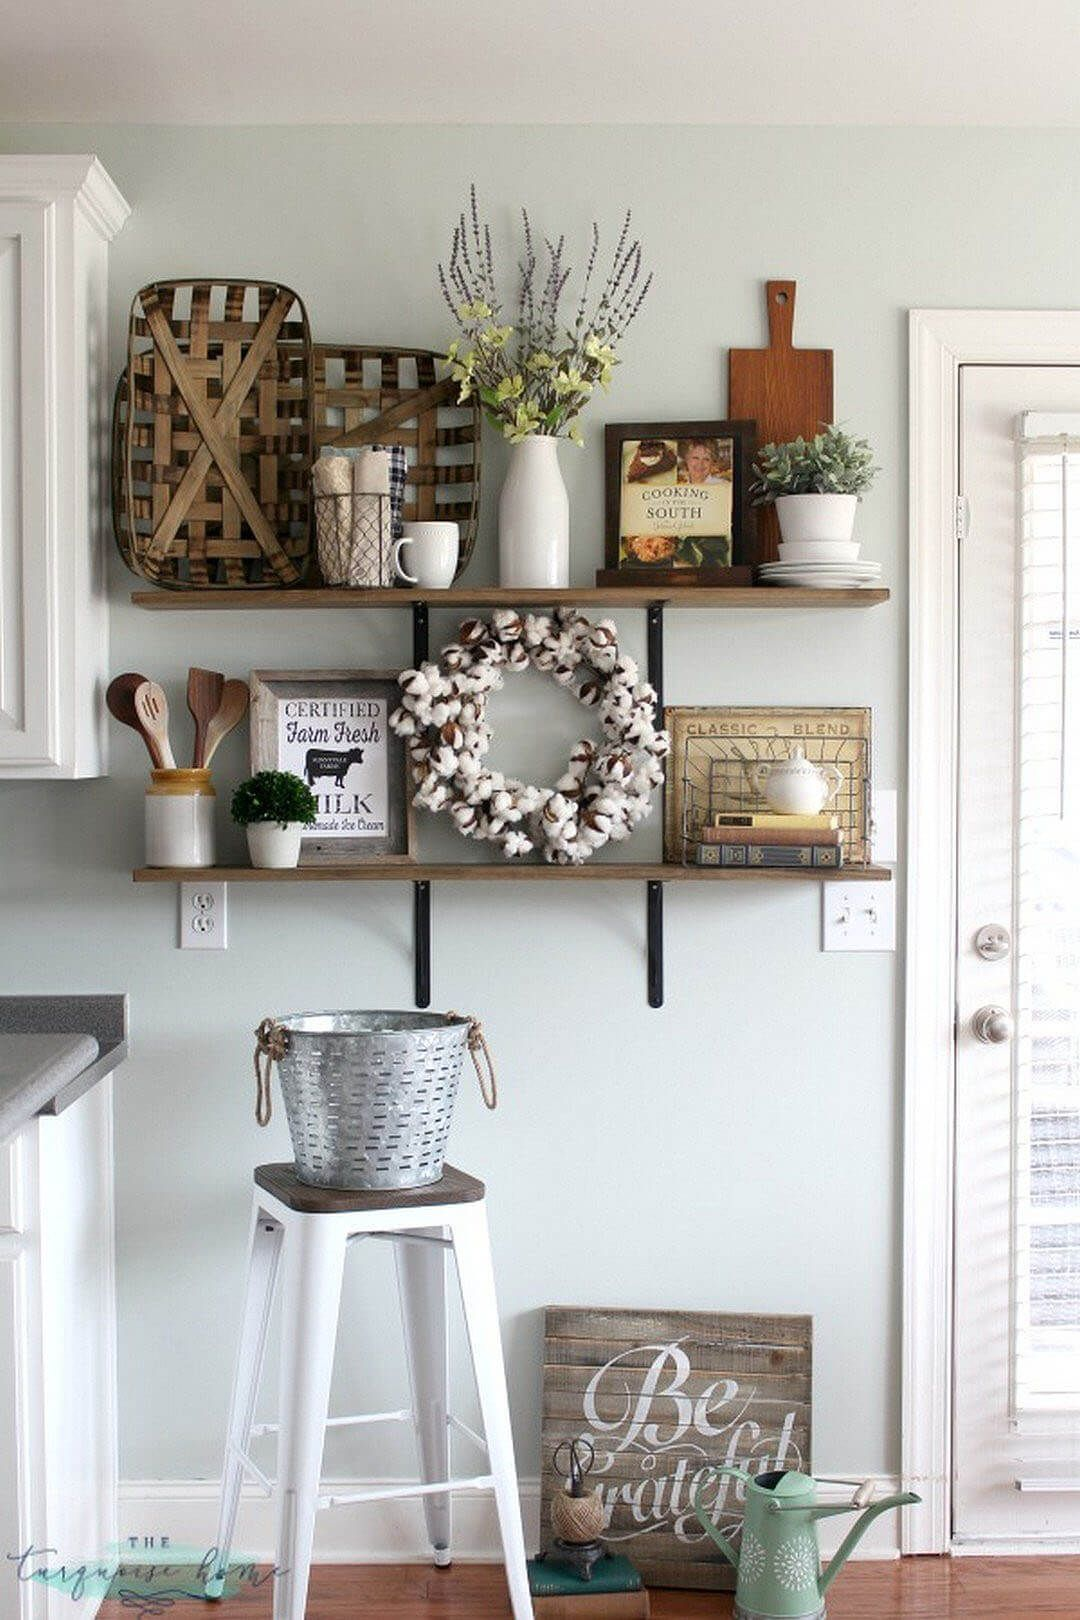 36 Pretty Kitchen Wall Decor Ideas to Stir Up Your Blank Walls ...